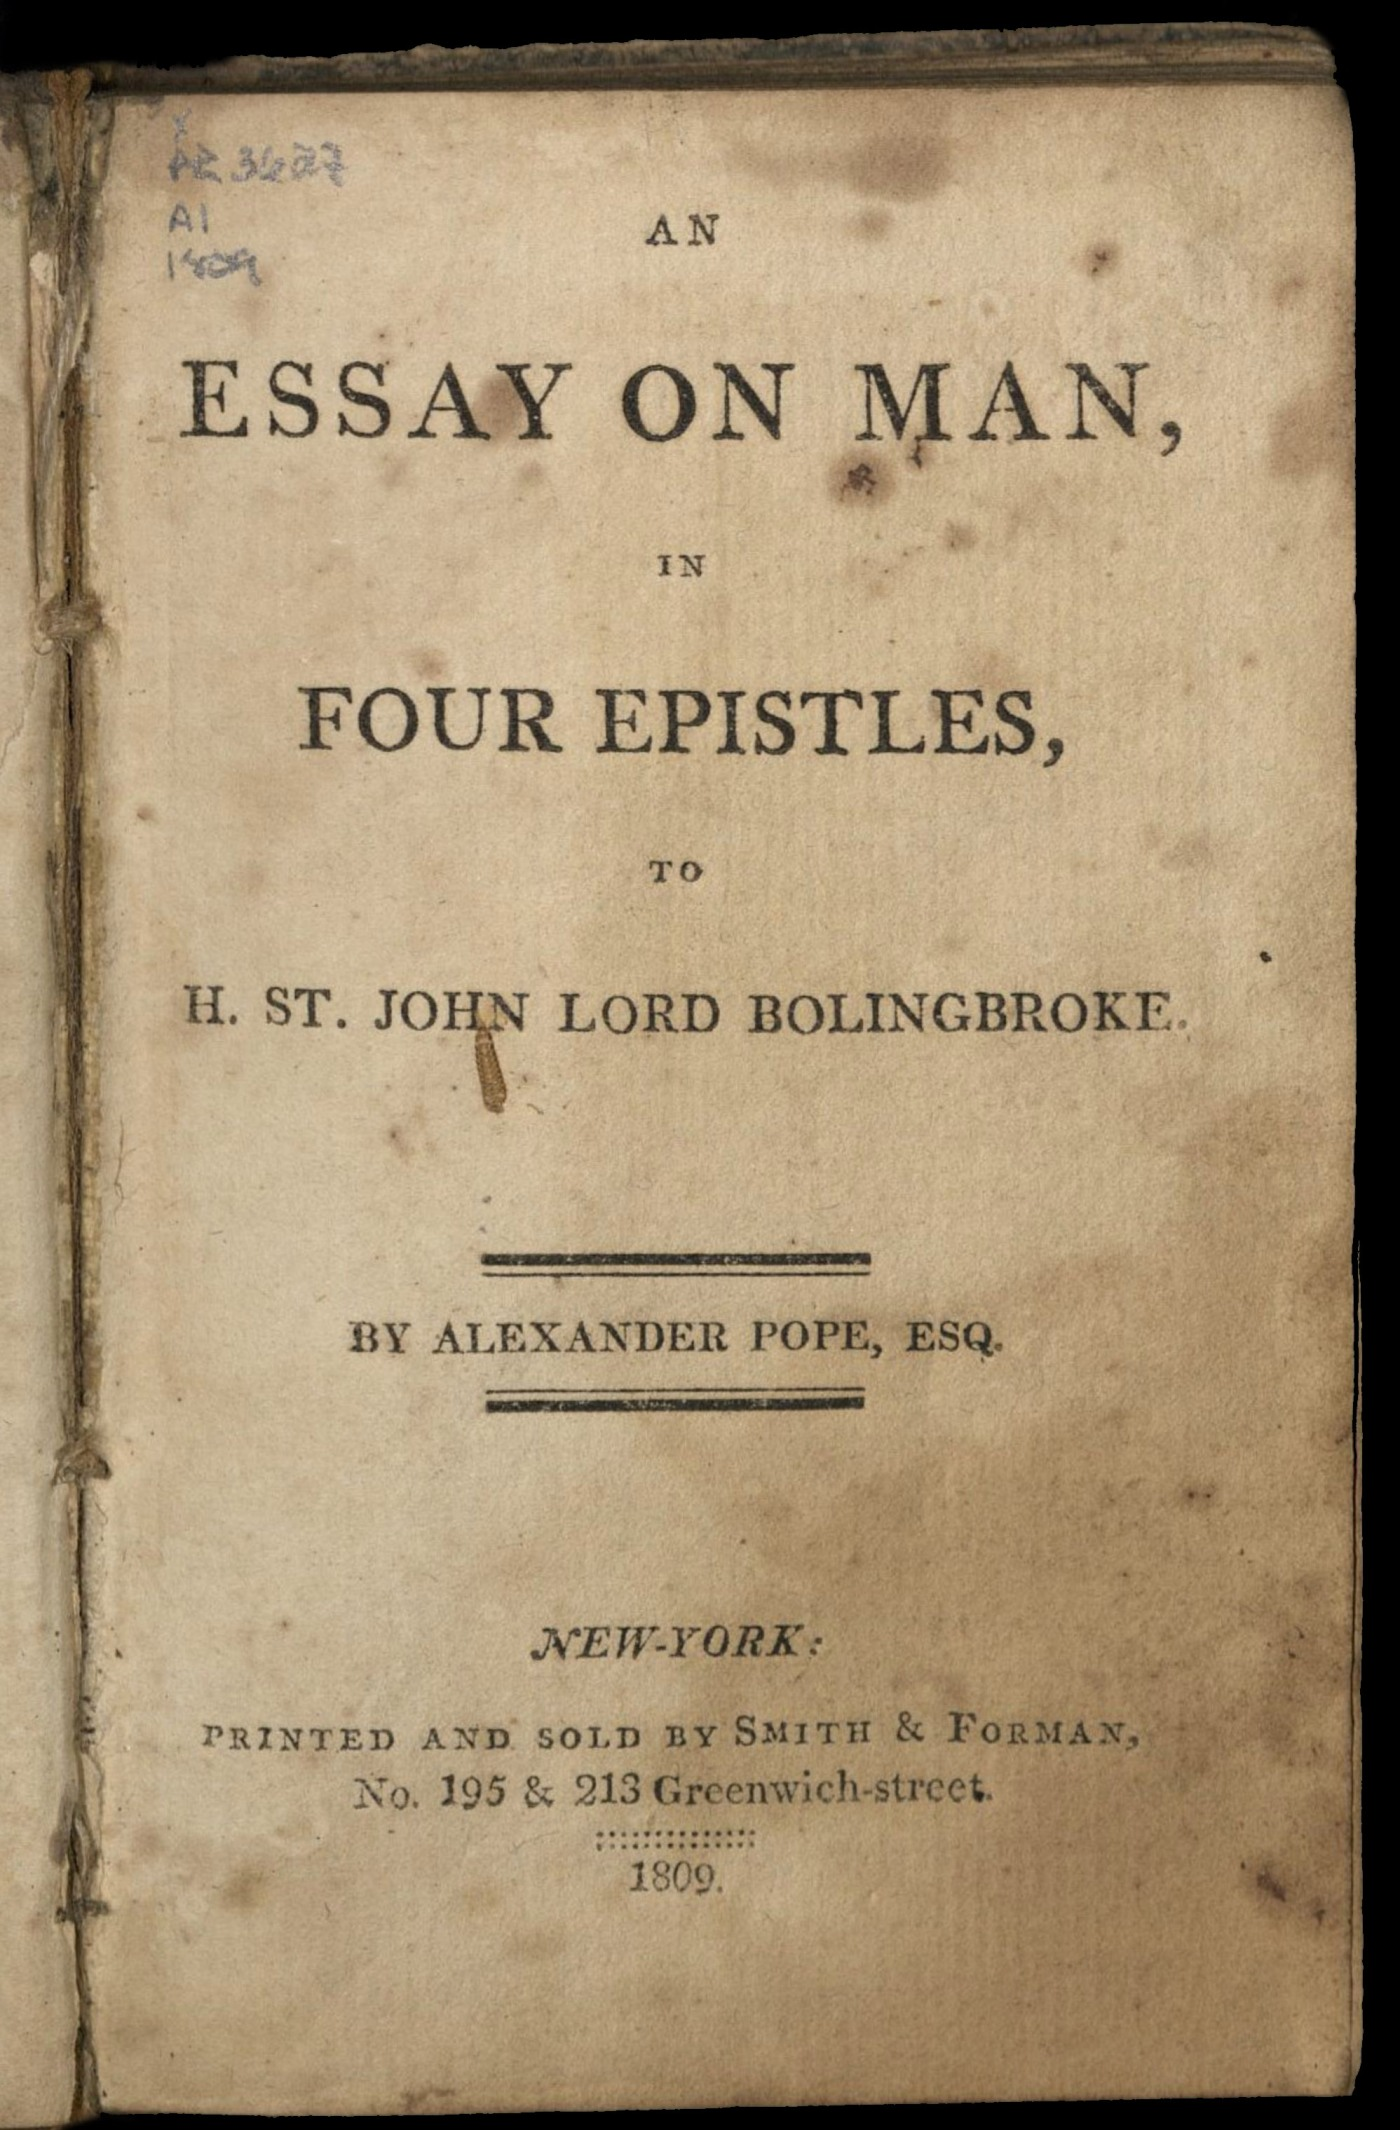 pope an essay on man epistle i Essay on man and other poems has 686 ratings and 23 alexander pope's essay always leave me with some type of hope for my an essay on man (epistle i) 2/12/07.